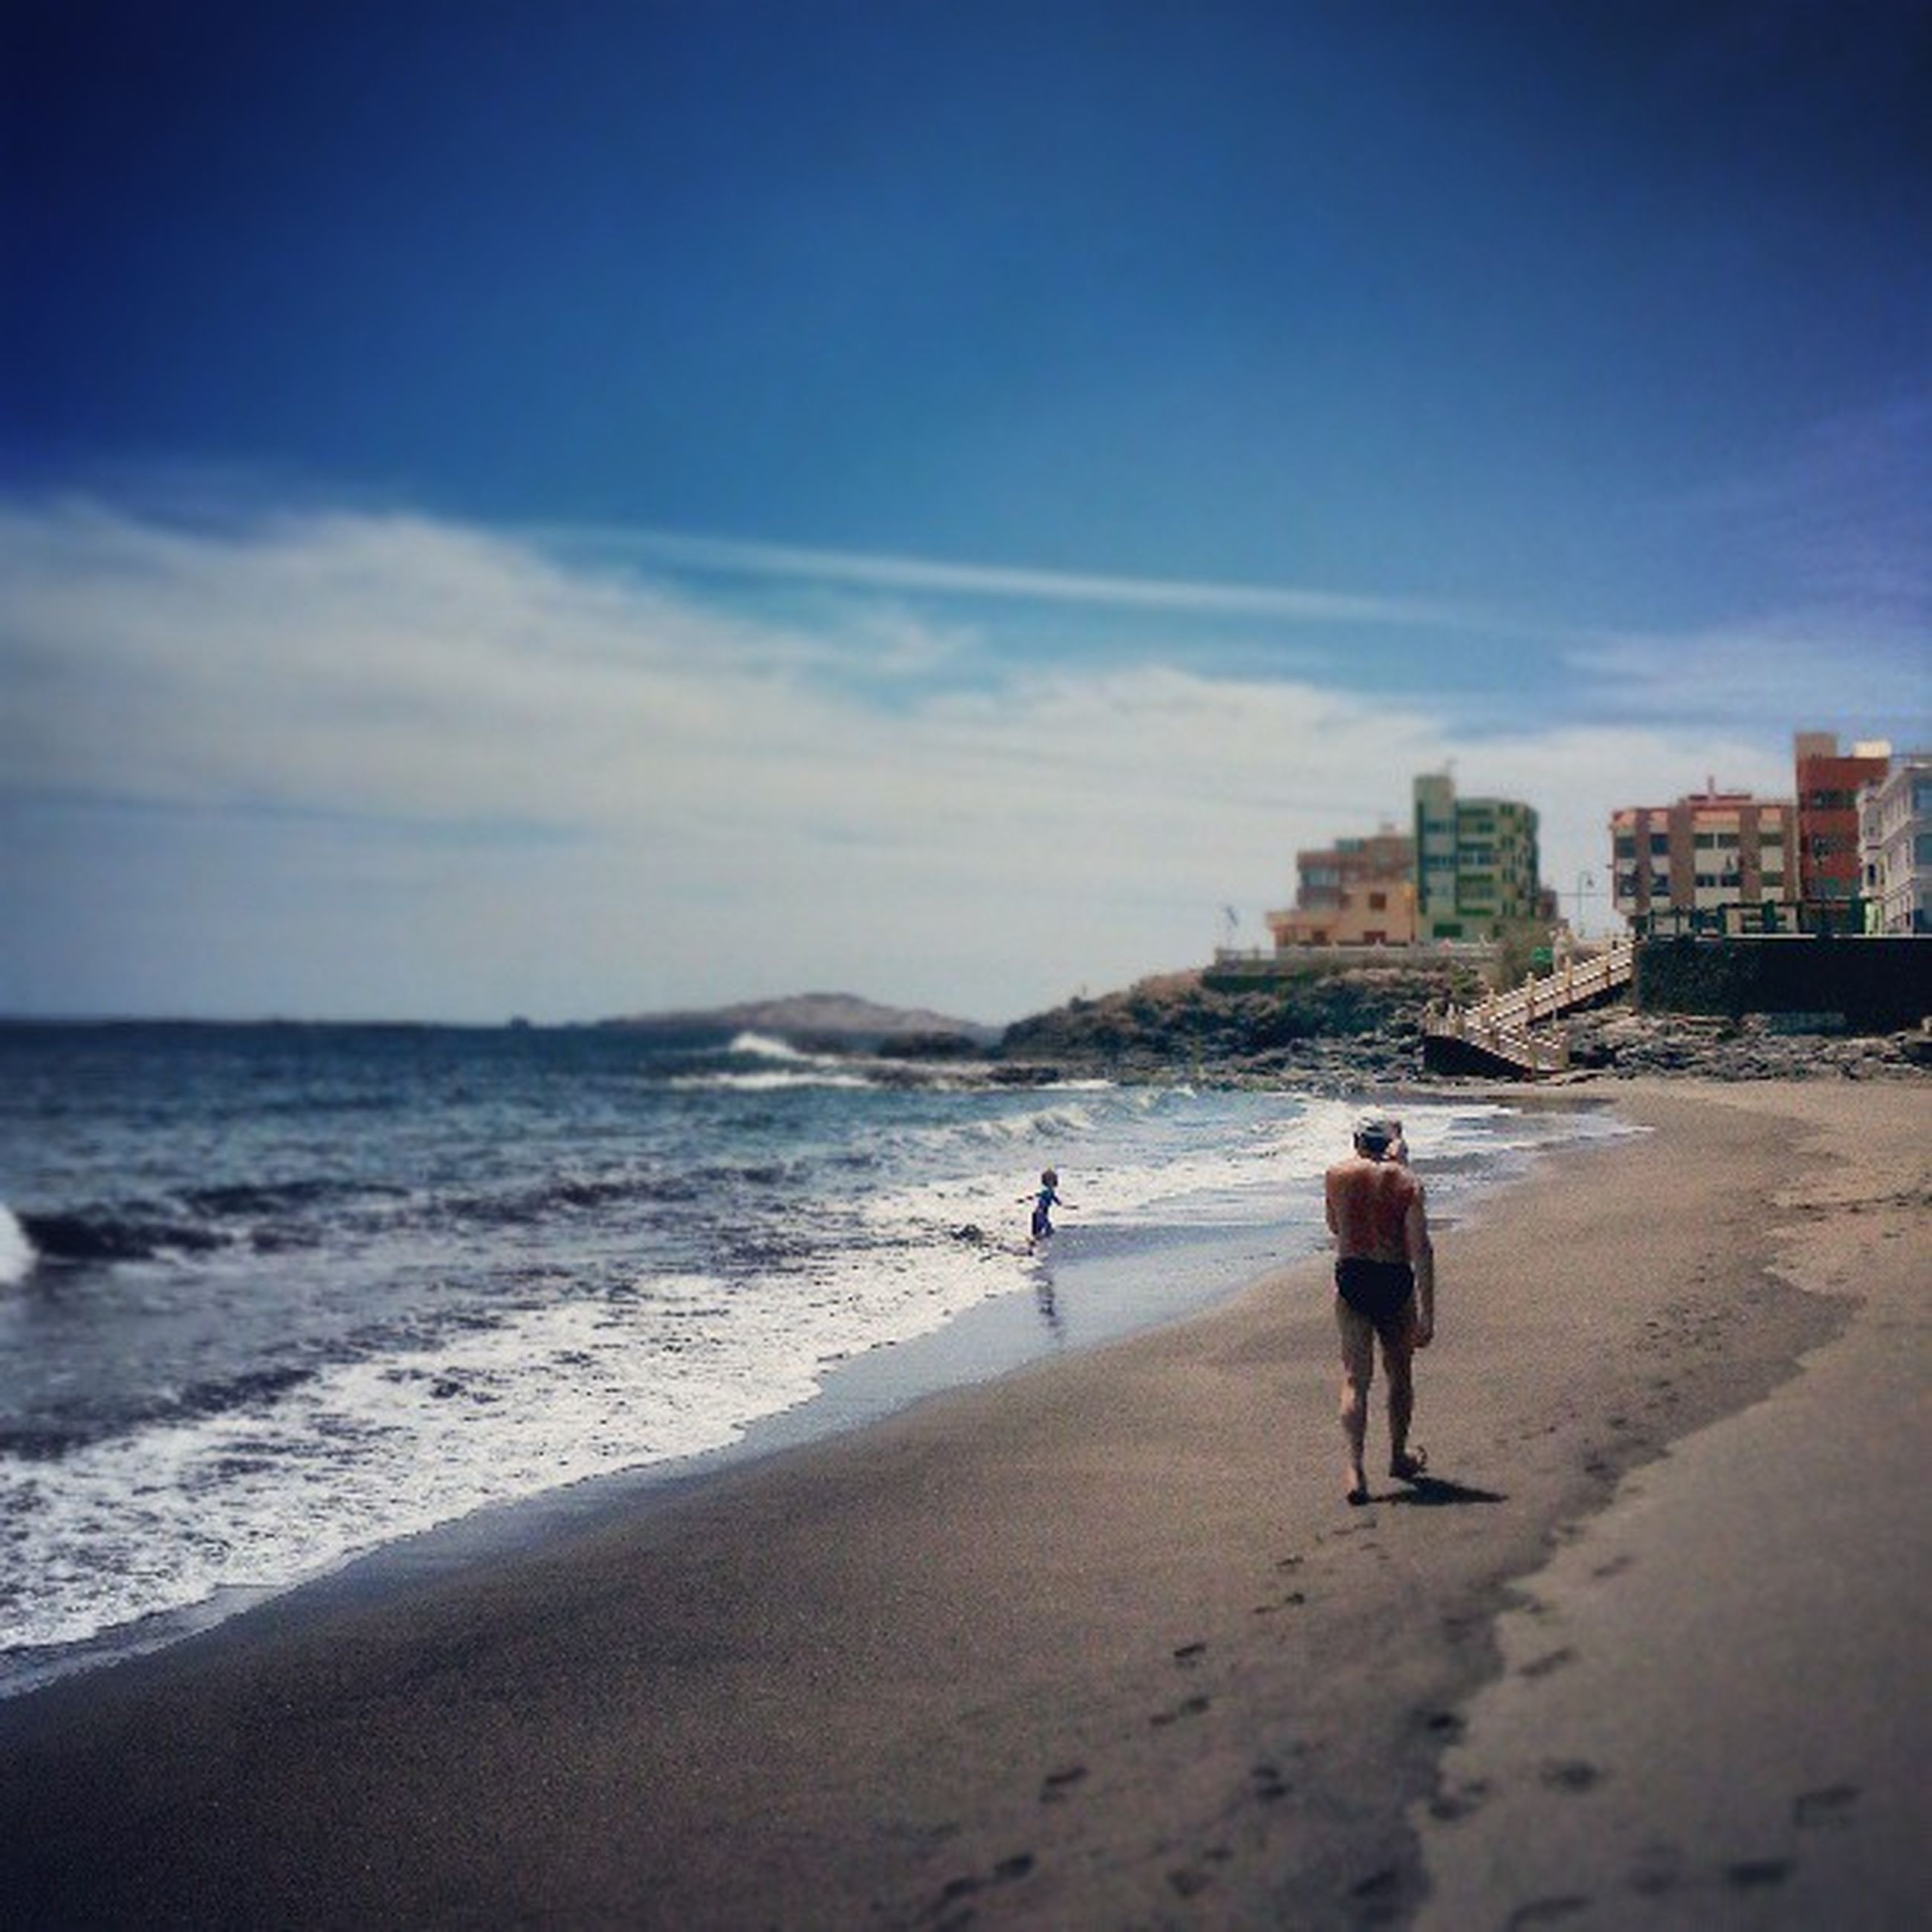 beach, sea, shore, sand, water, sky, leisure activity, lifestyles, full length, rear view, walking, vacations, horizon over water, wave, coastline, person, men, nature